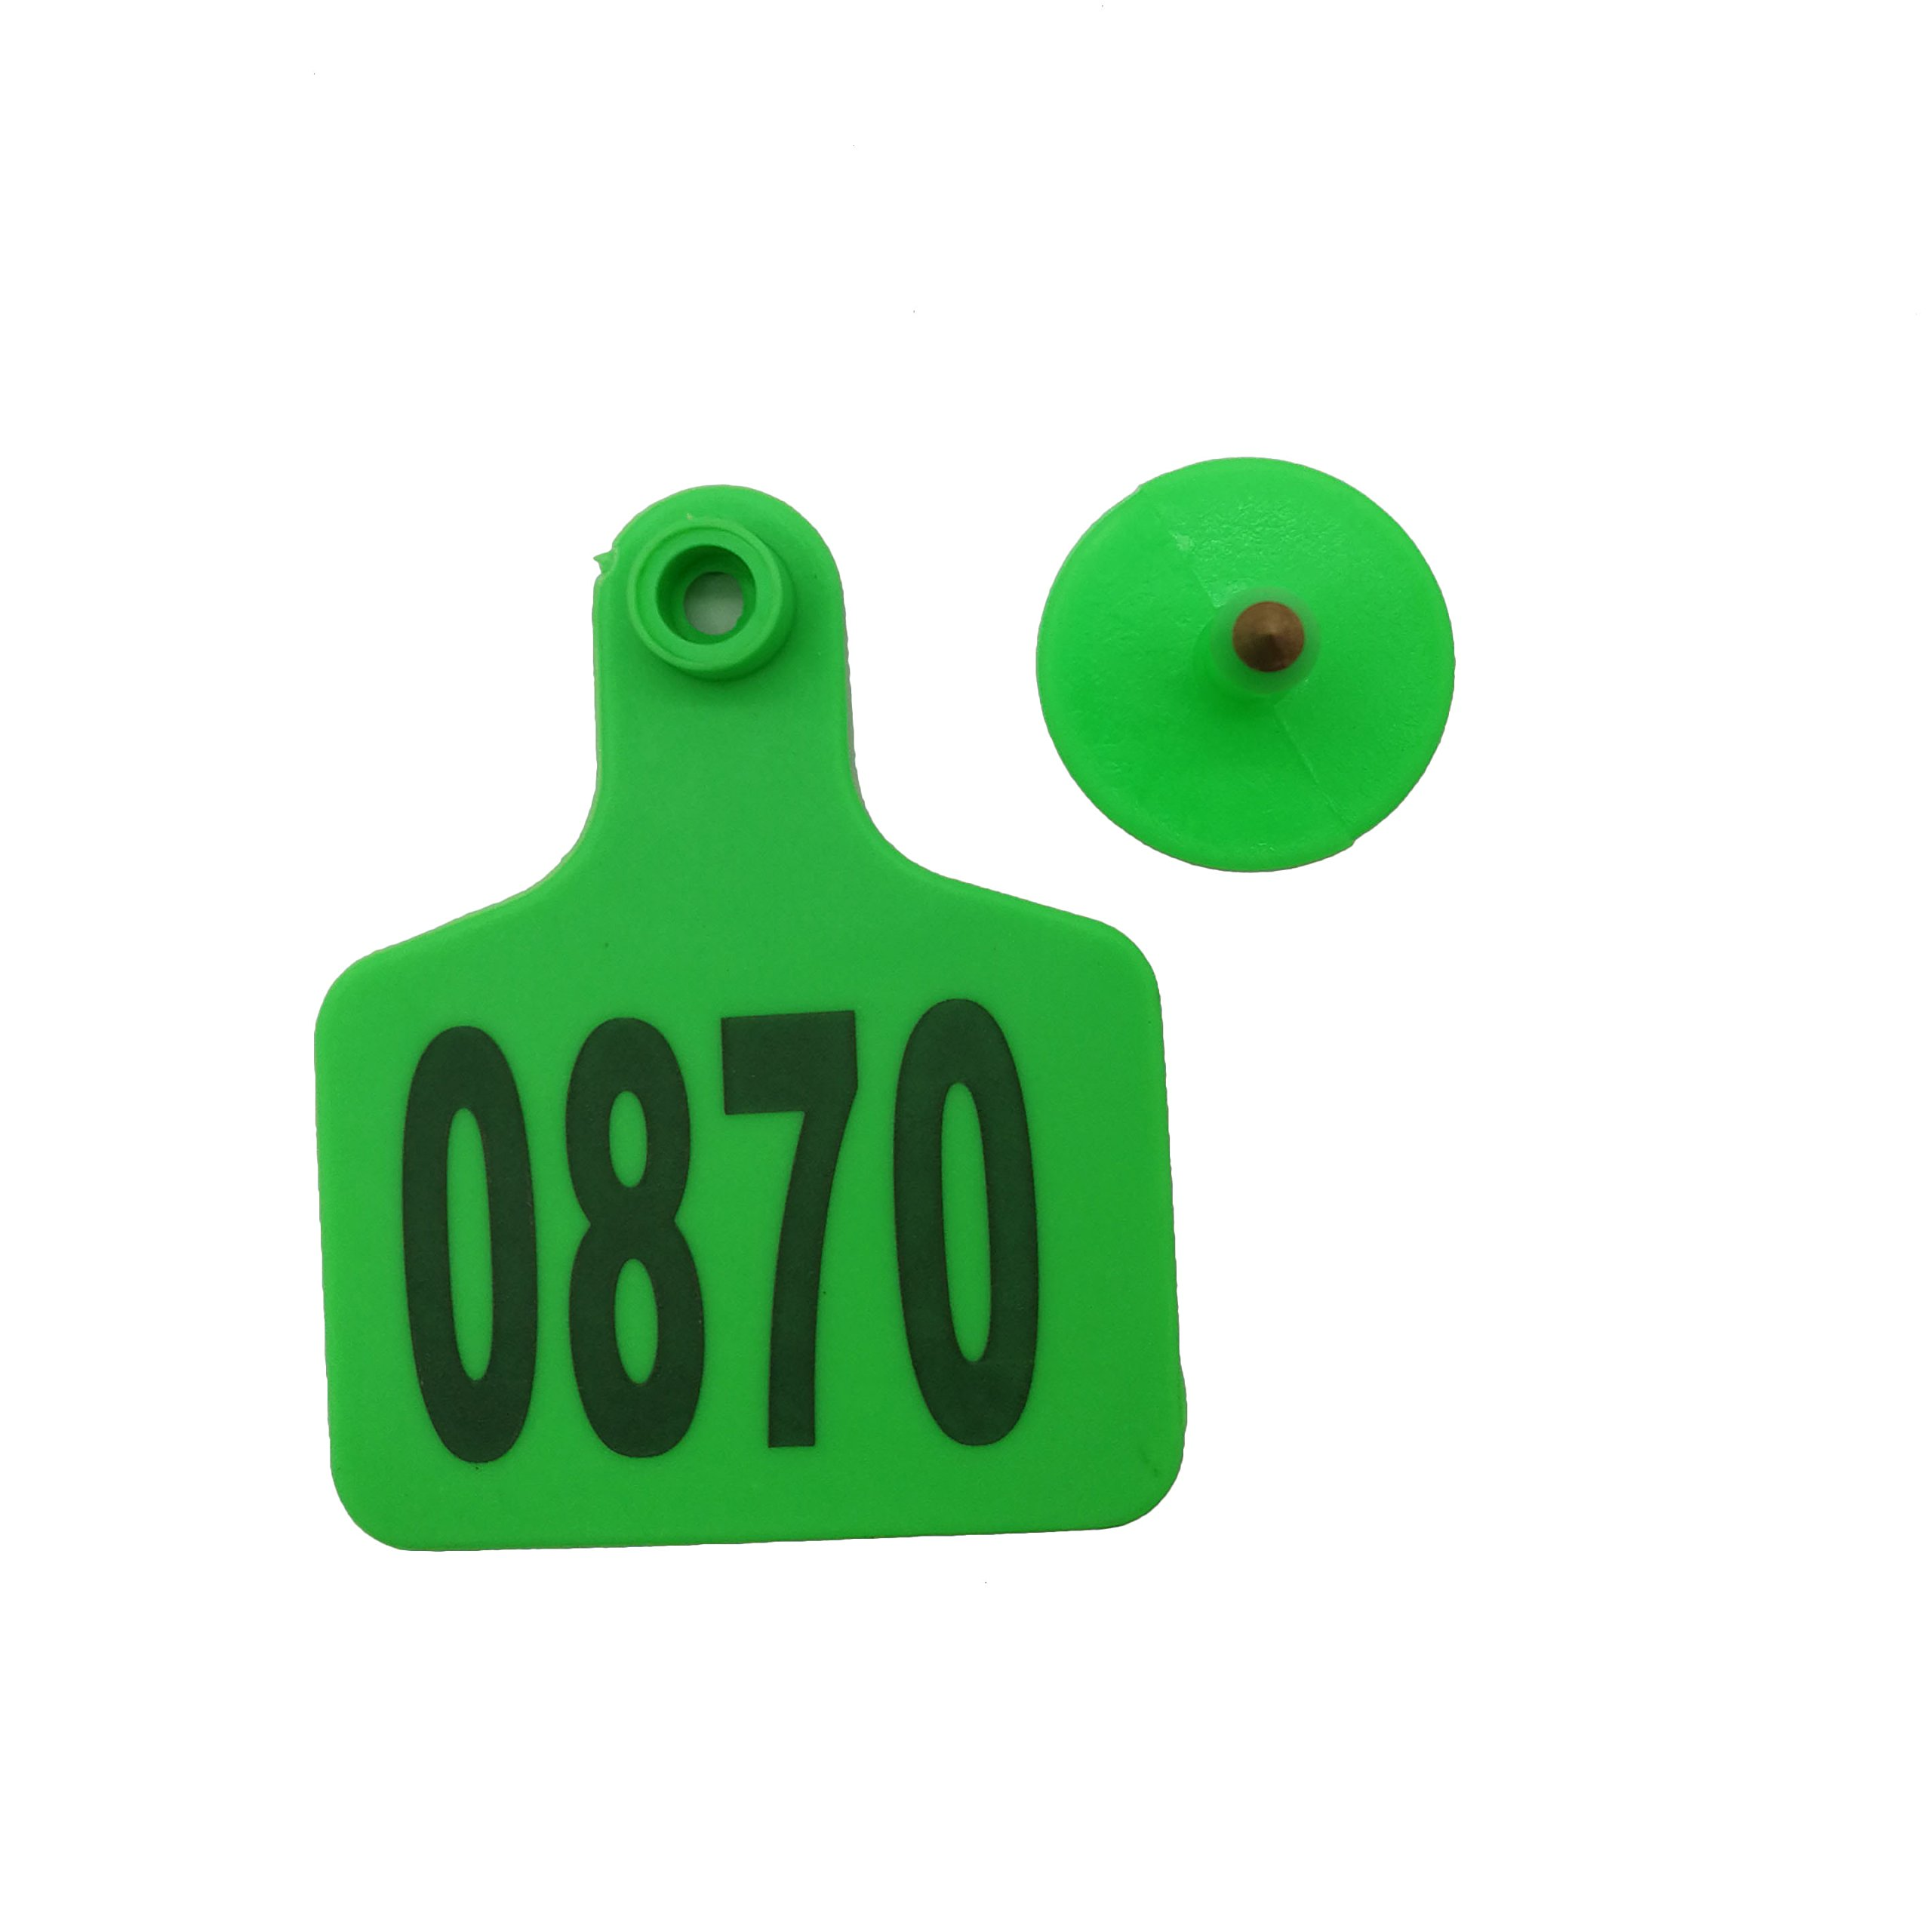 NO 001~1000 TPU Green Home Farm Animal Pet Cow Cattle Large Plastic Livestock Ear Tag Marked Identification